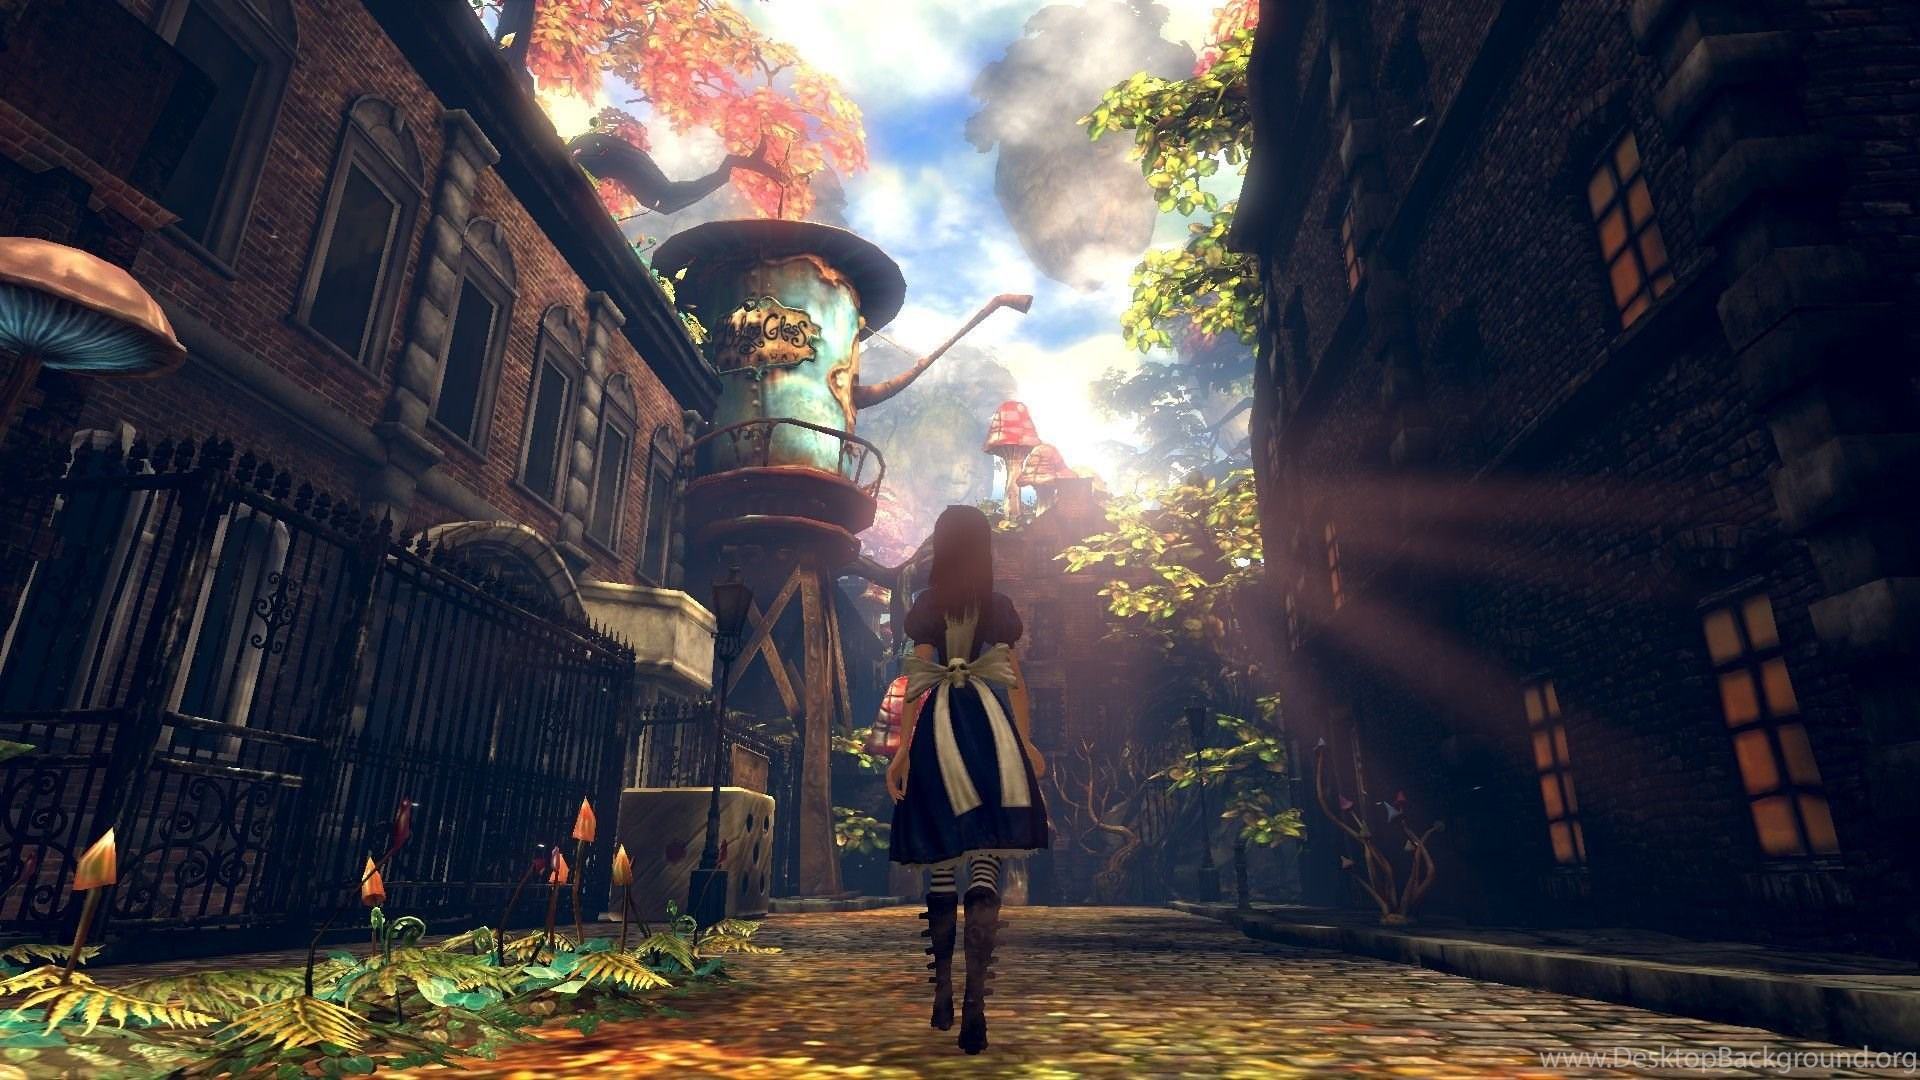 Alice Madness Returns A Beautiful Journey Down The Rabbit Hole